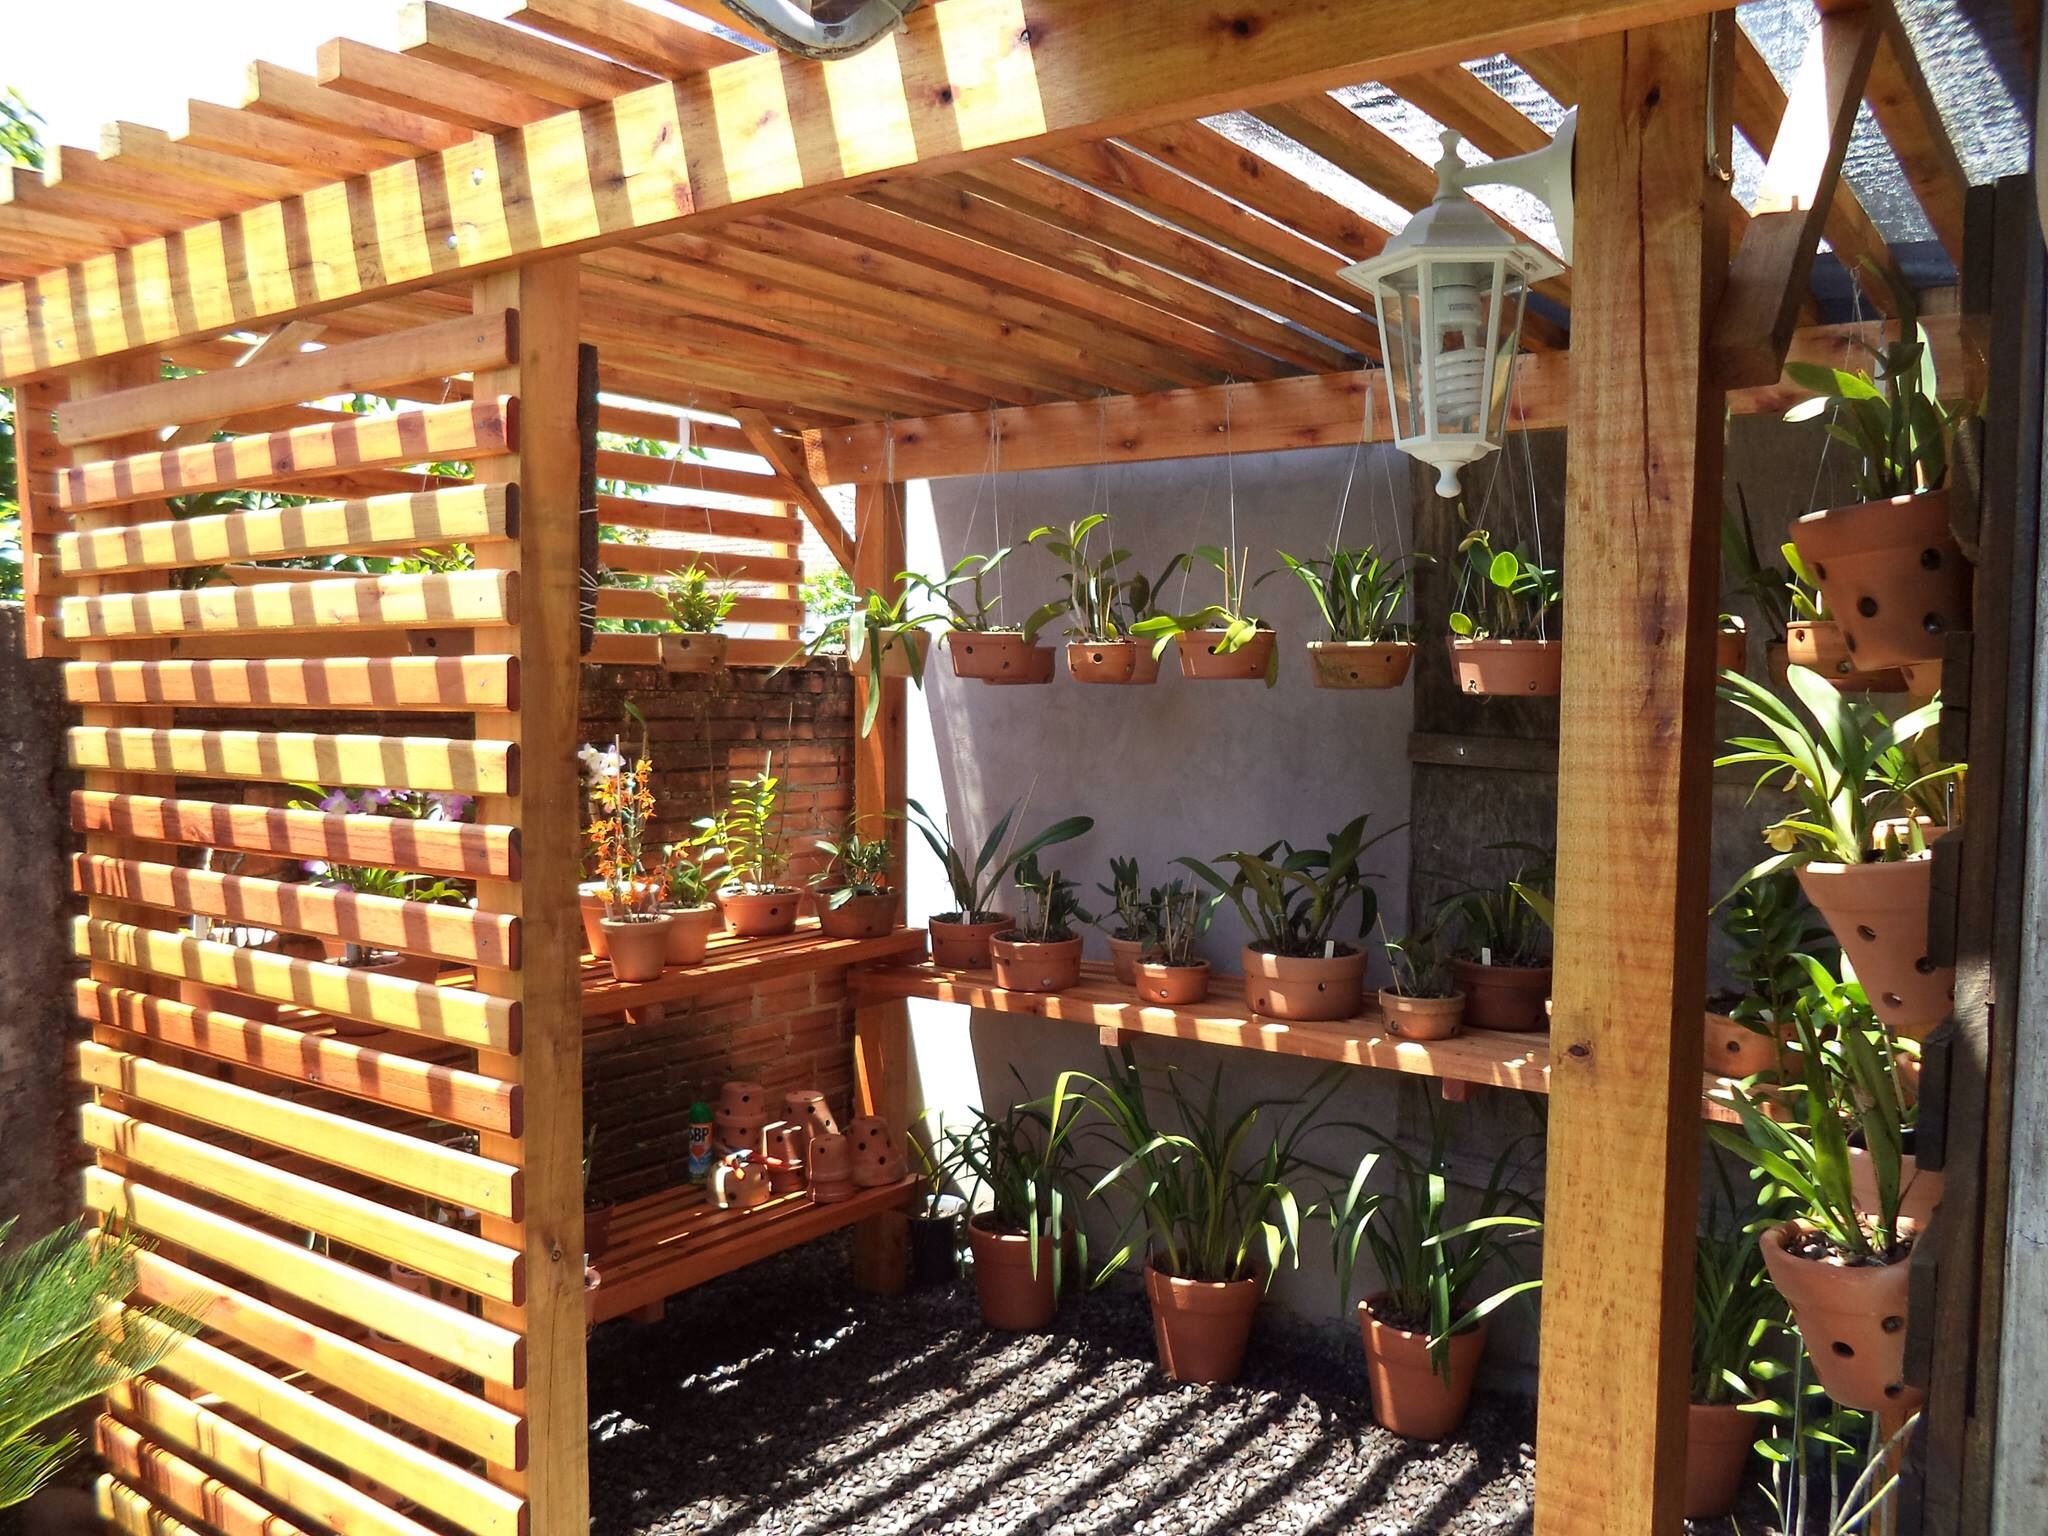 Orchid House Orquidiario Orchids Orquidea Terrarium Garden Jardin Greenhouse Display Shade House Orchid House Planting Flowers Backyard shade house designs